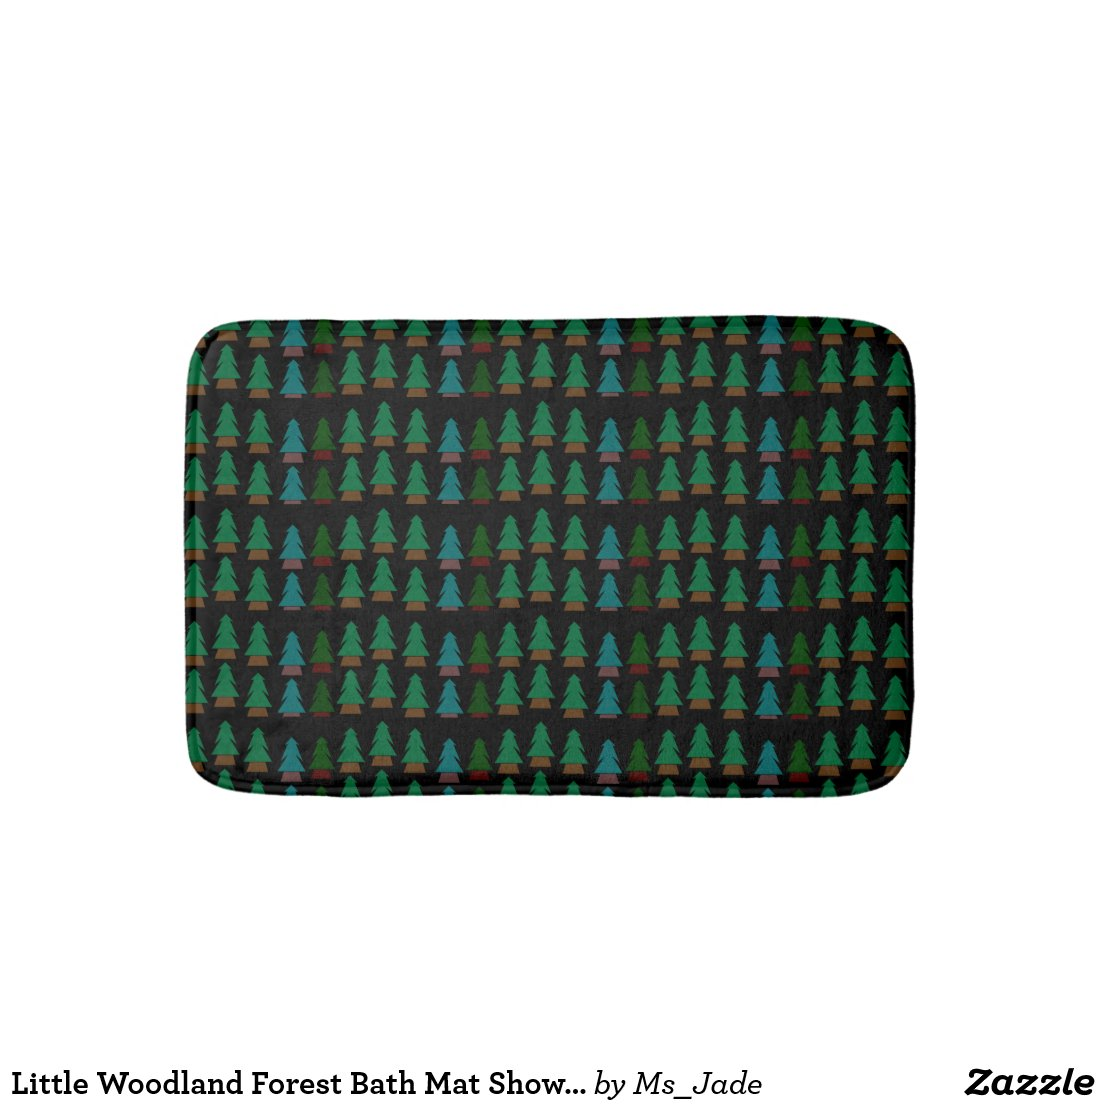 Little Woodland Forest Bath Mat Shower Mat